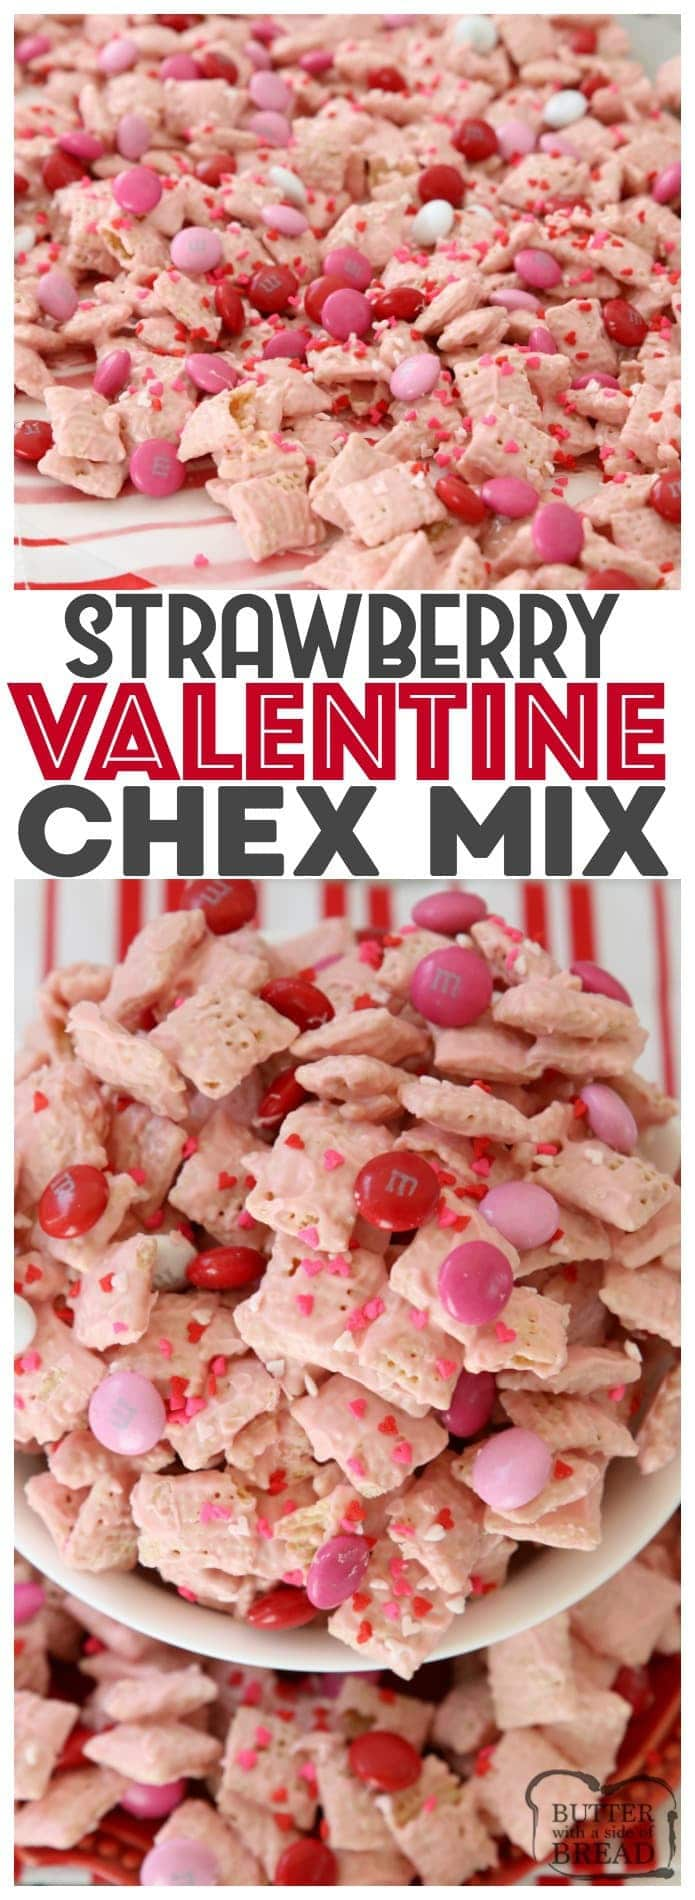 Strawberry Valentine Chex Mix is easy to make, fun & perfectly festive for #Valentines Day! #Strawberry white #chocolate coating on Chex cereal with added chocolate #candy is the perfect sweet #treat! #Recipe from Butter With A Side of Bread #dessert #ValentinesDay #pink #sprinkles